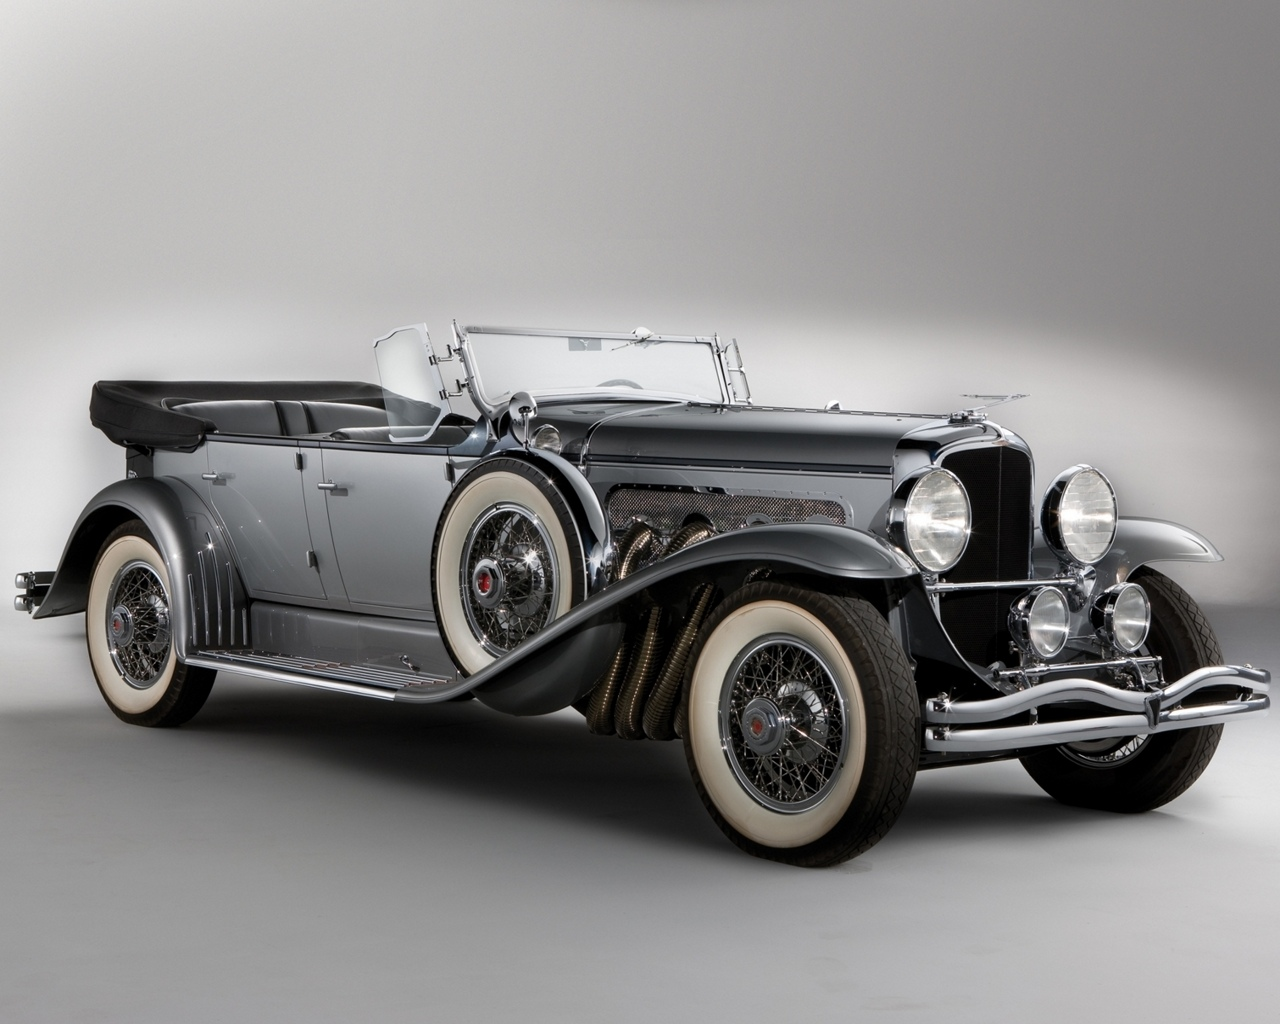 80 american classic cars wallpaper hottest pictures for Classic american